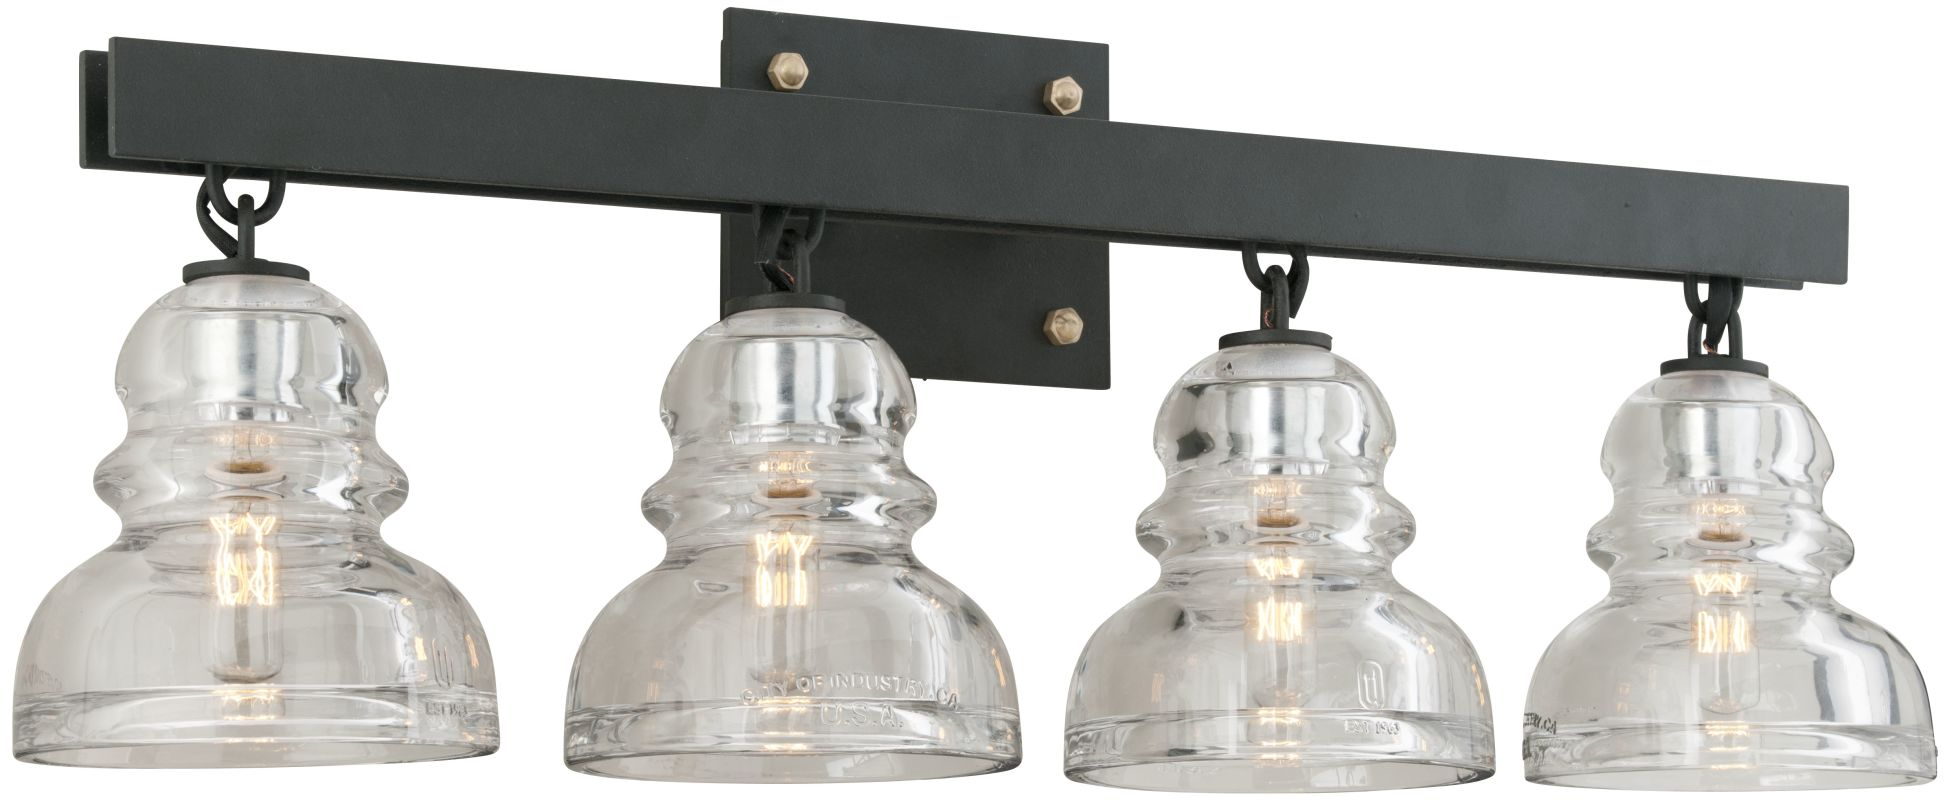 Troy Lighting B3964 Deep Bronze Menlo Park 4 Light Bathroom Vanity Light with Glass Insulator ...